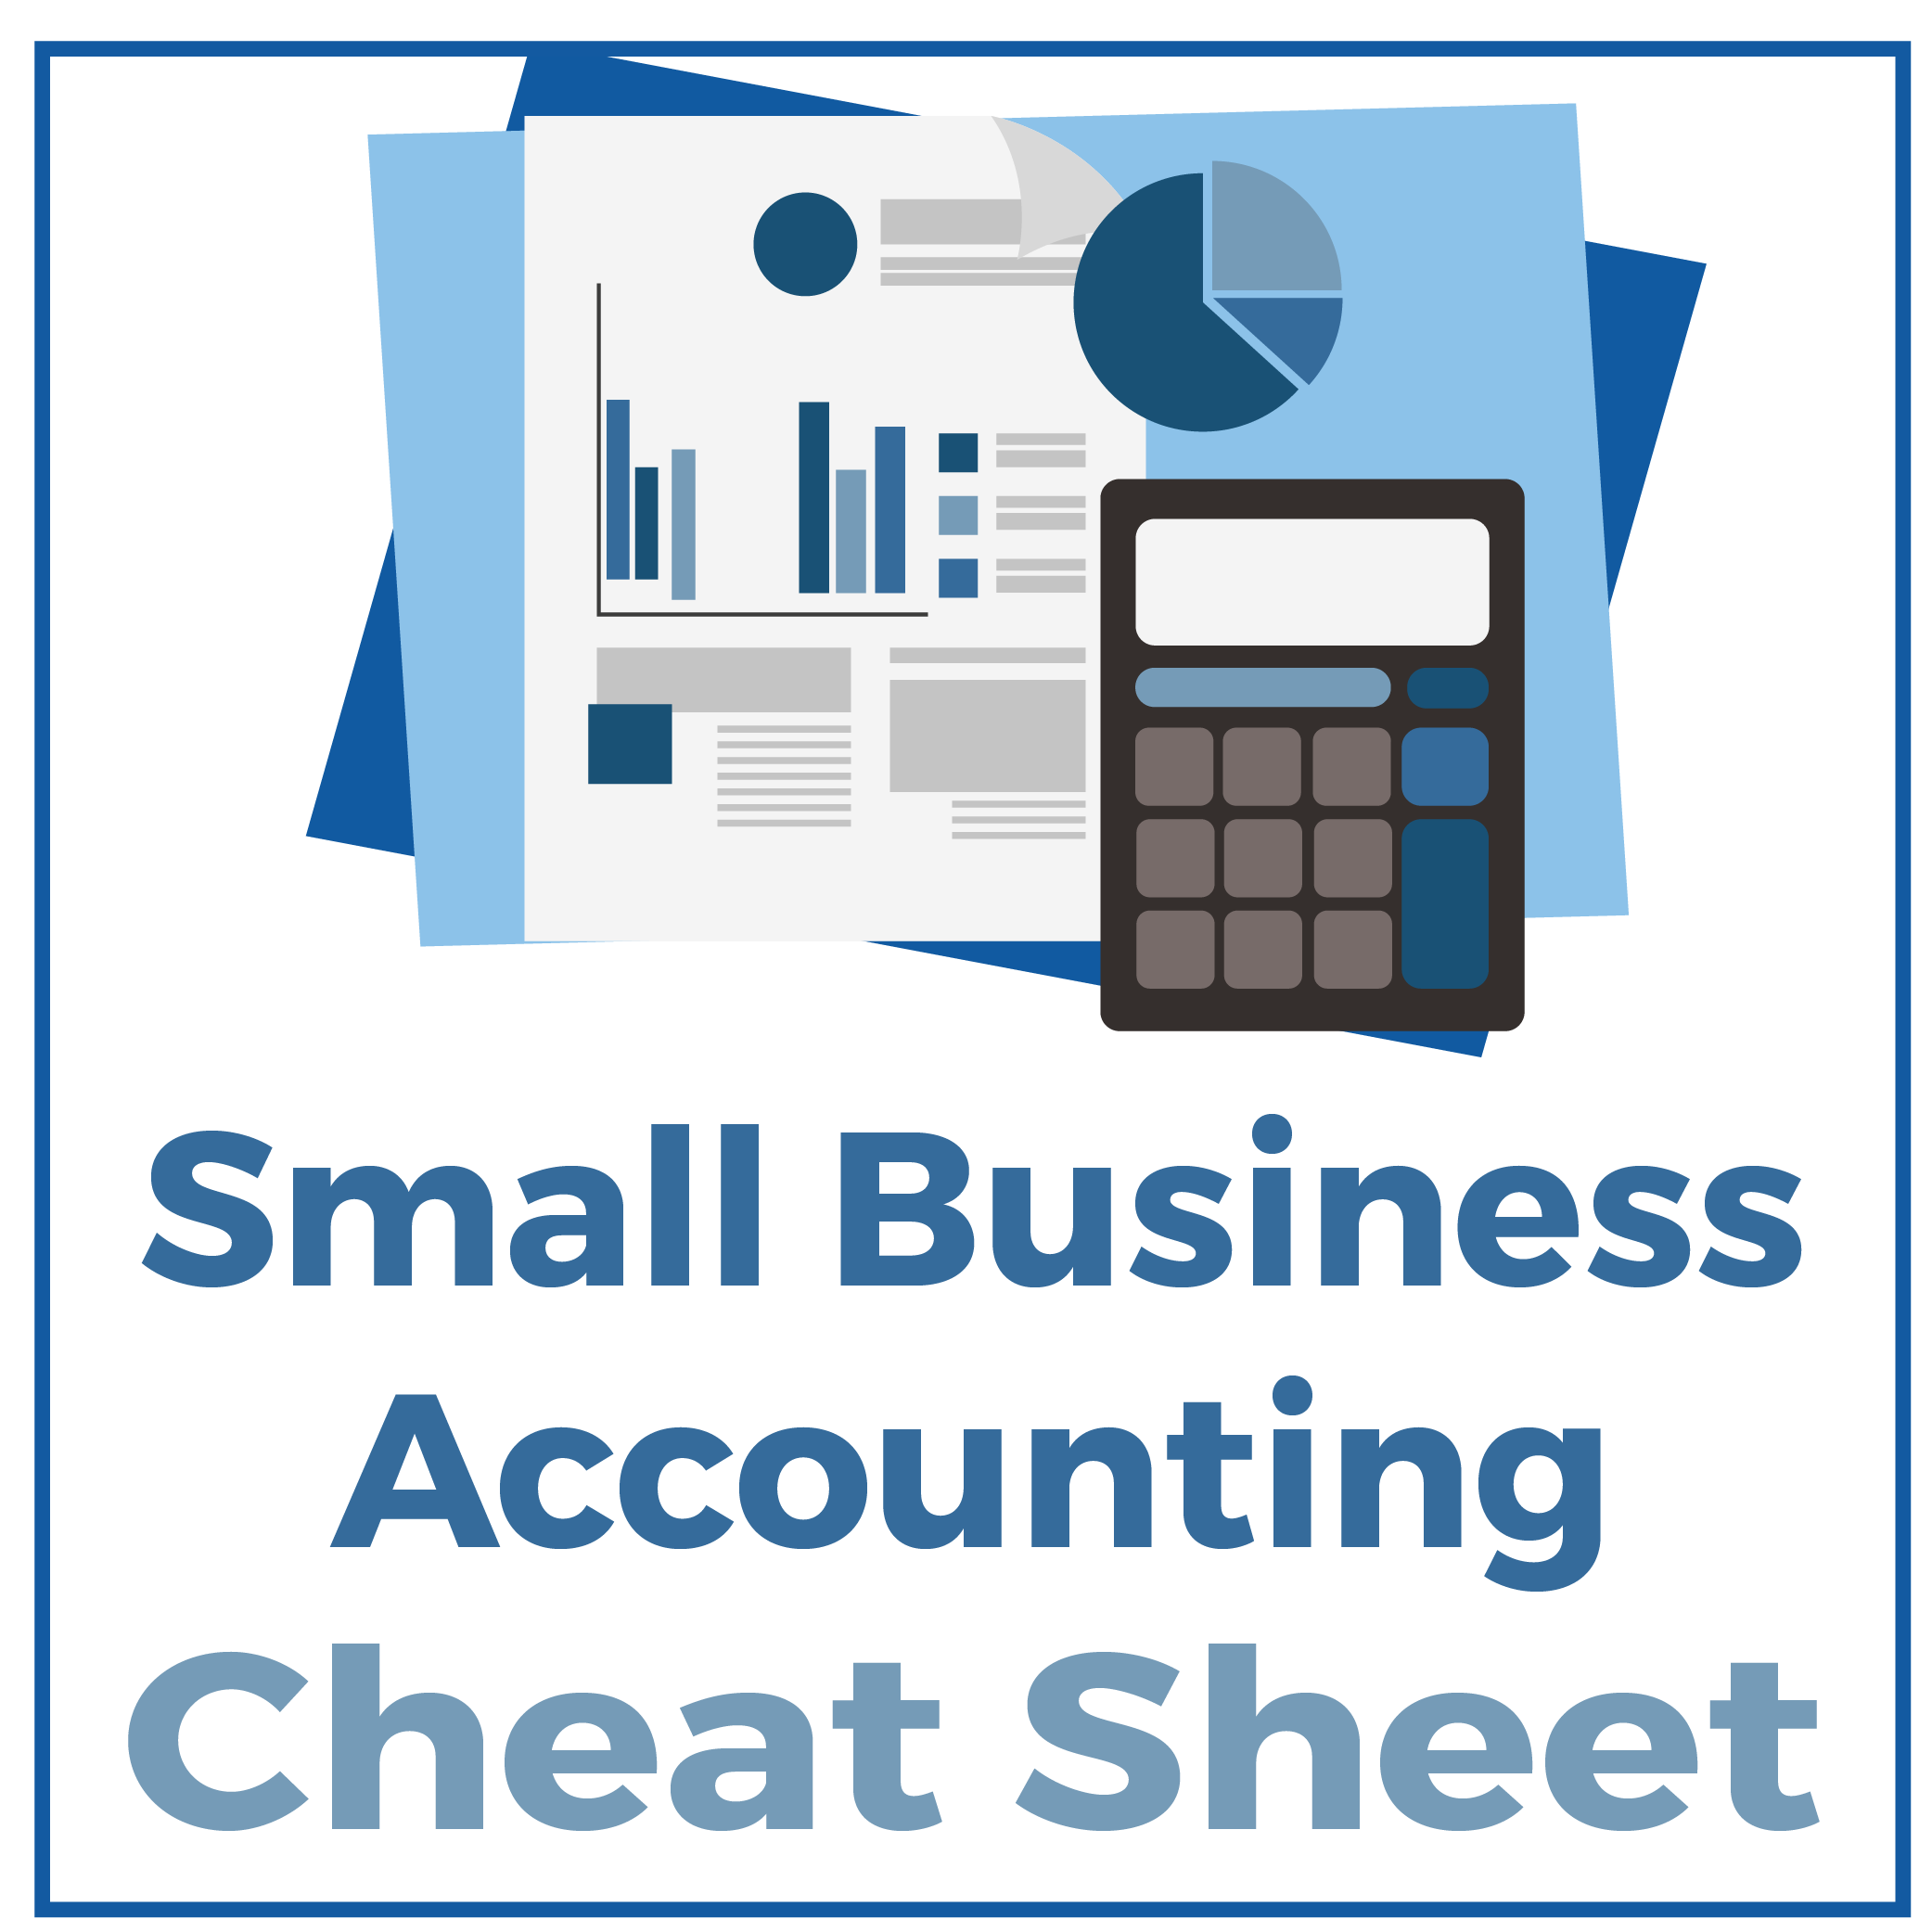 Small Business Accounting Cheat Sheet